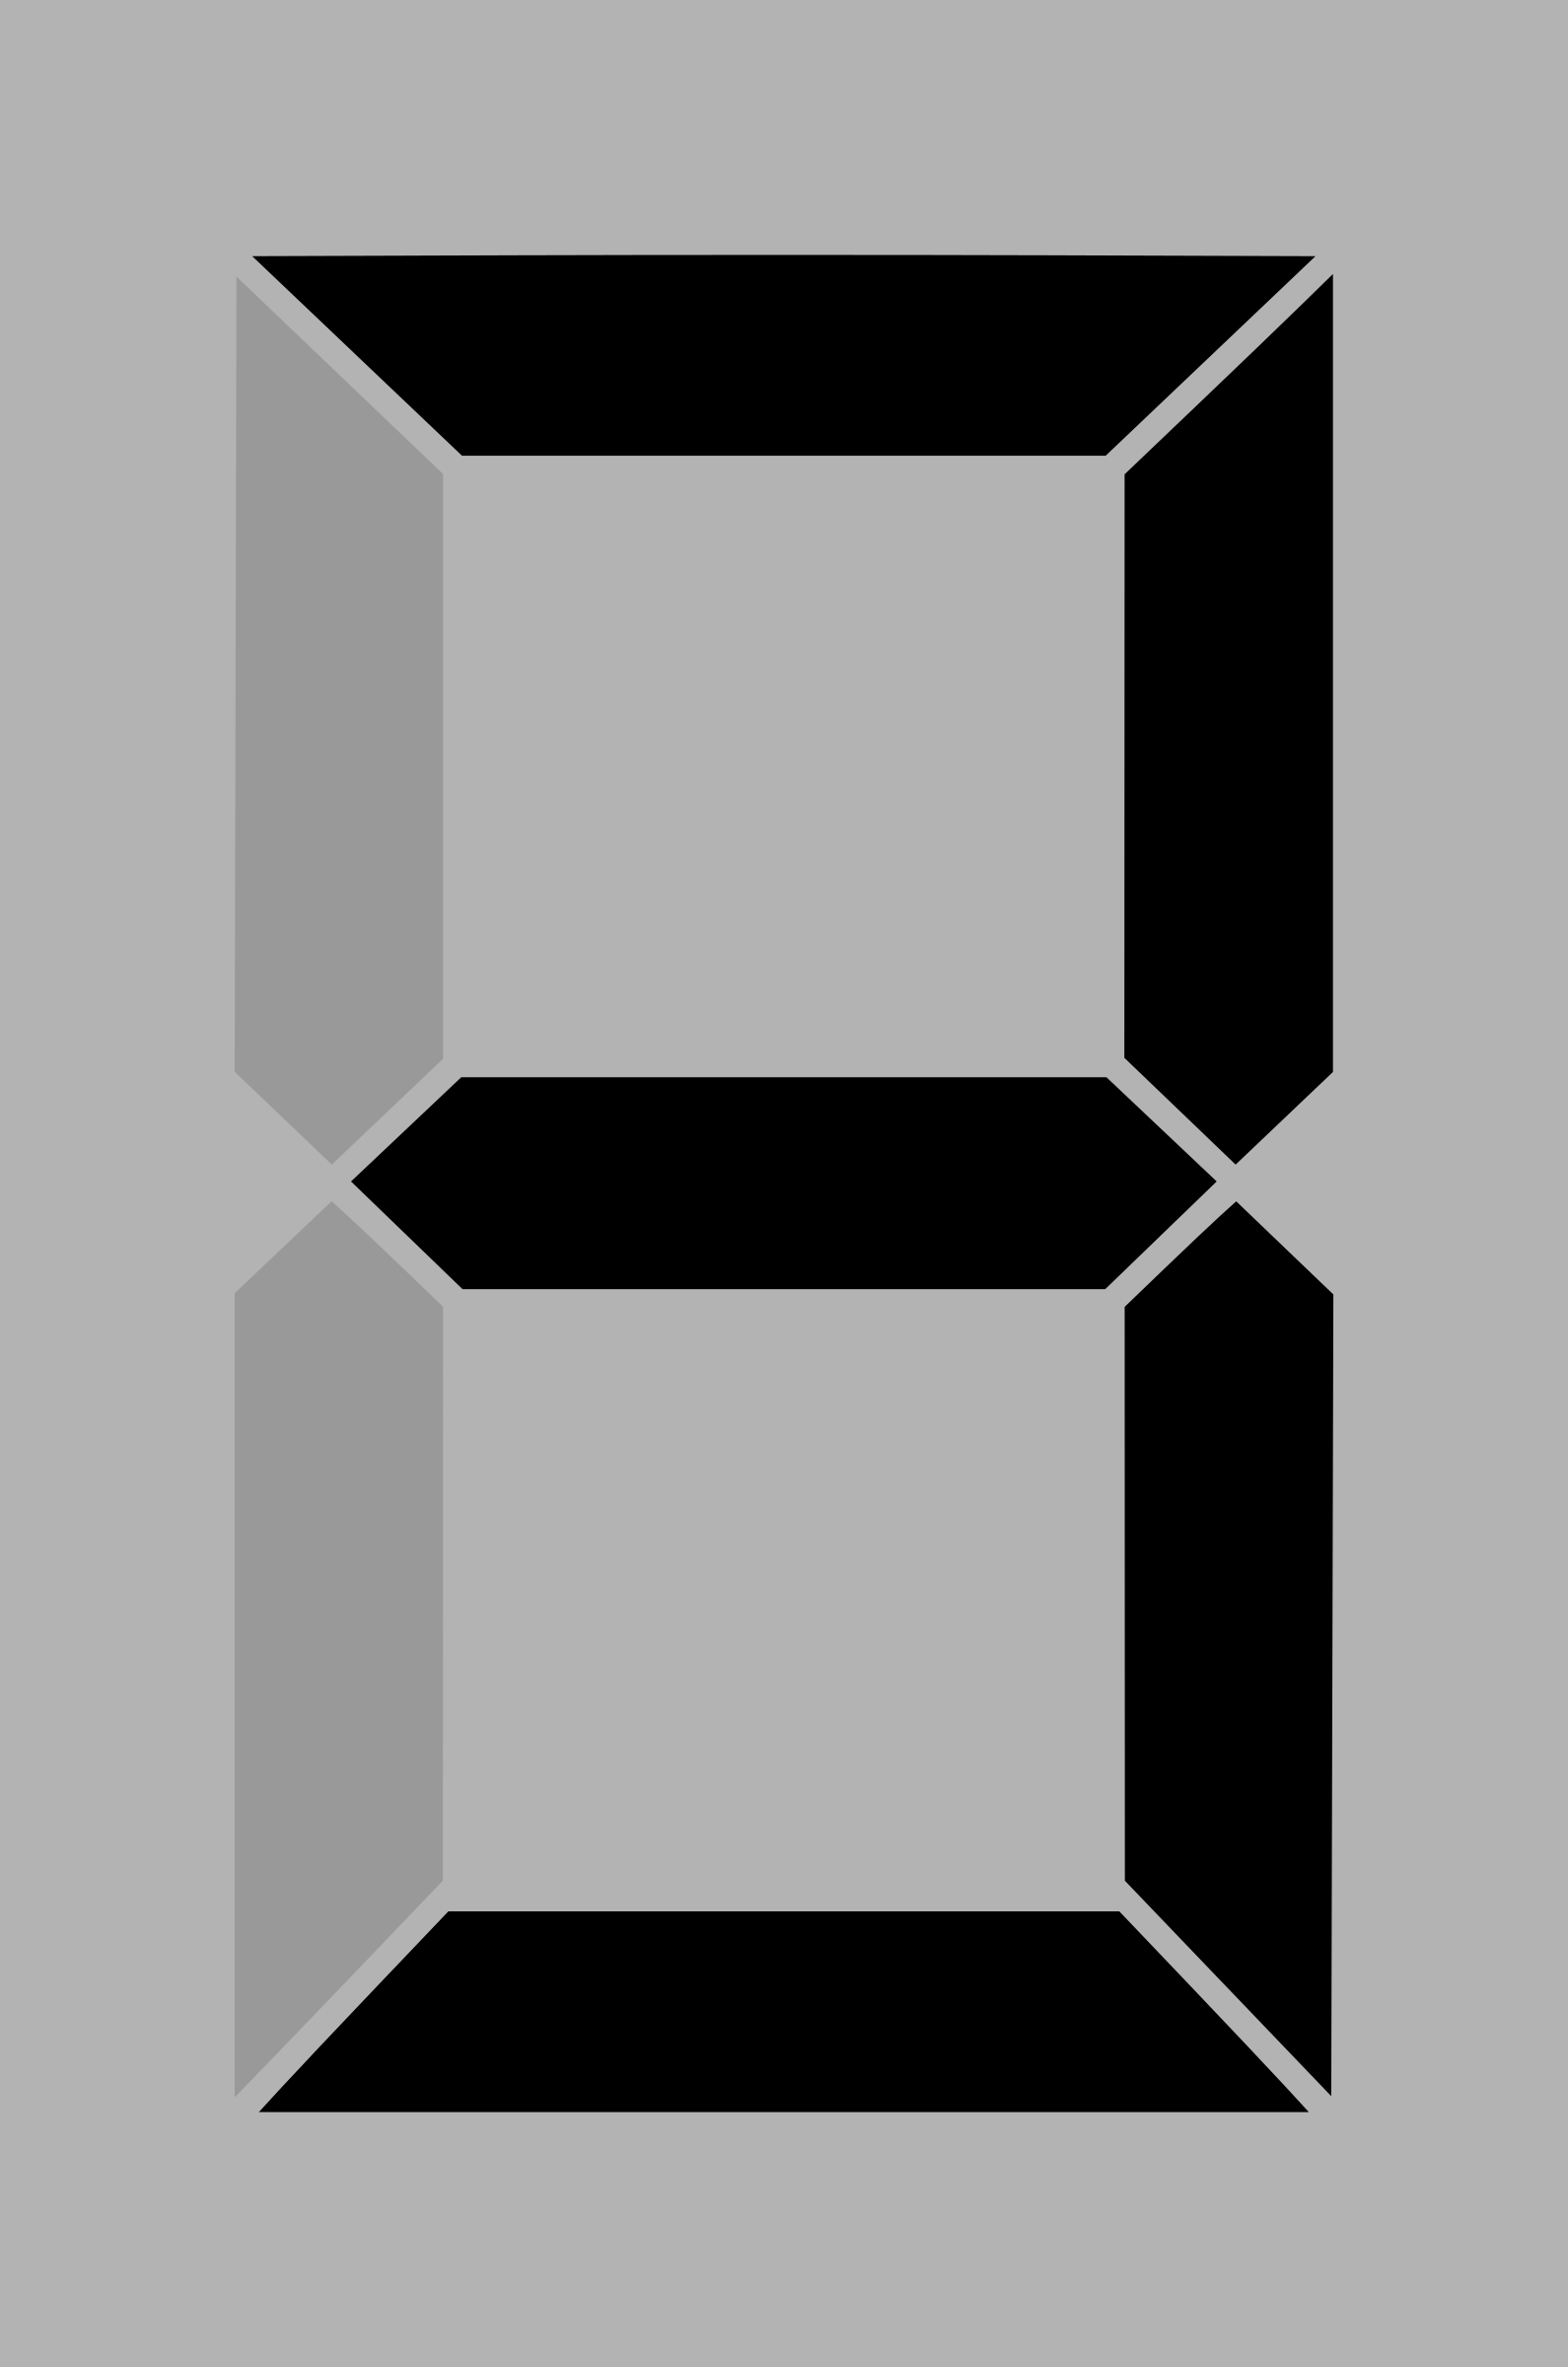 Seven segment display gray 3 by alex8664